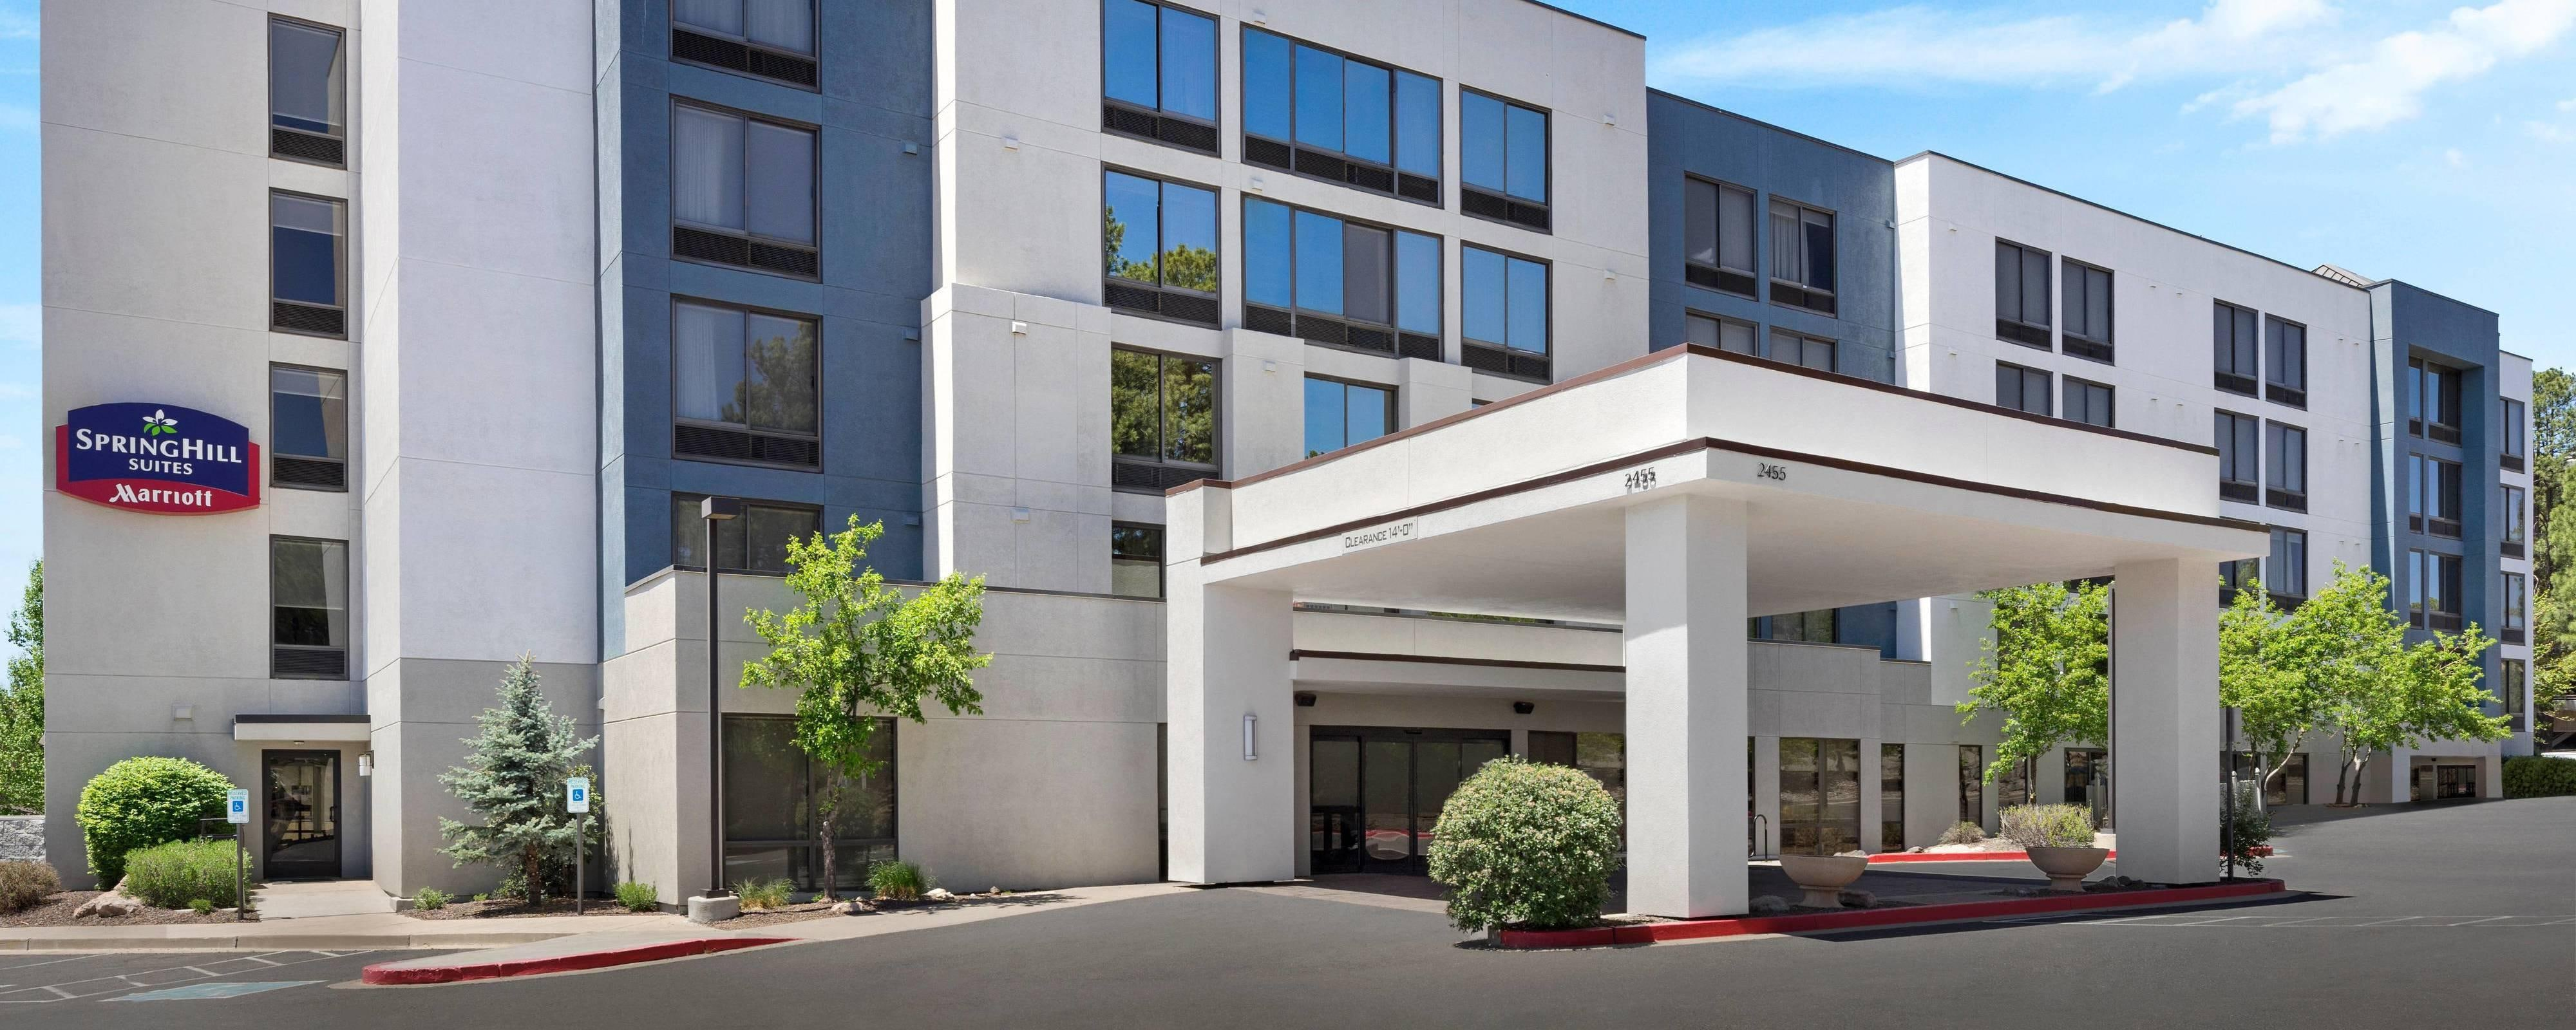 Pet Friendly Hotel In Flagstaff Springhill Suites Flagstaff